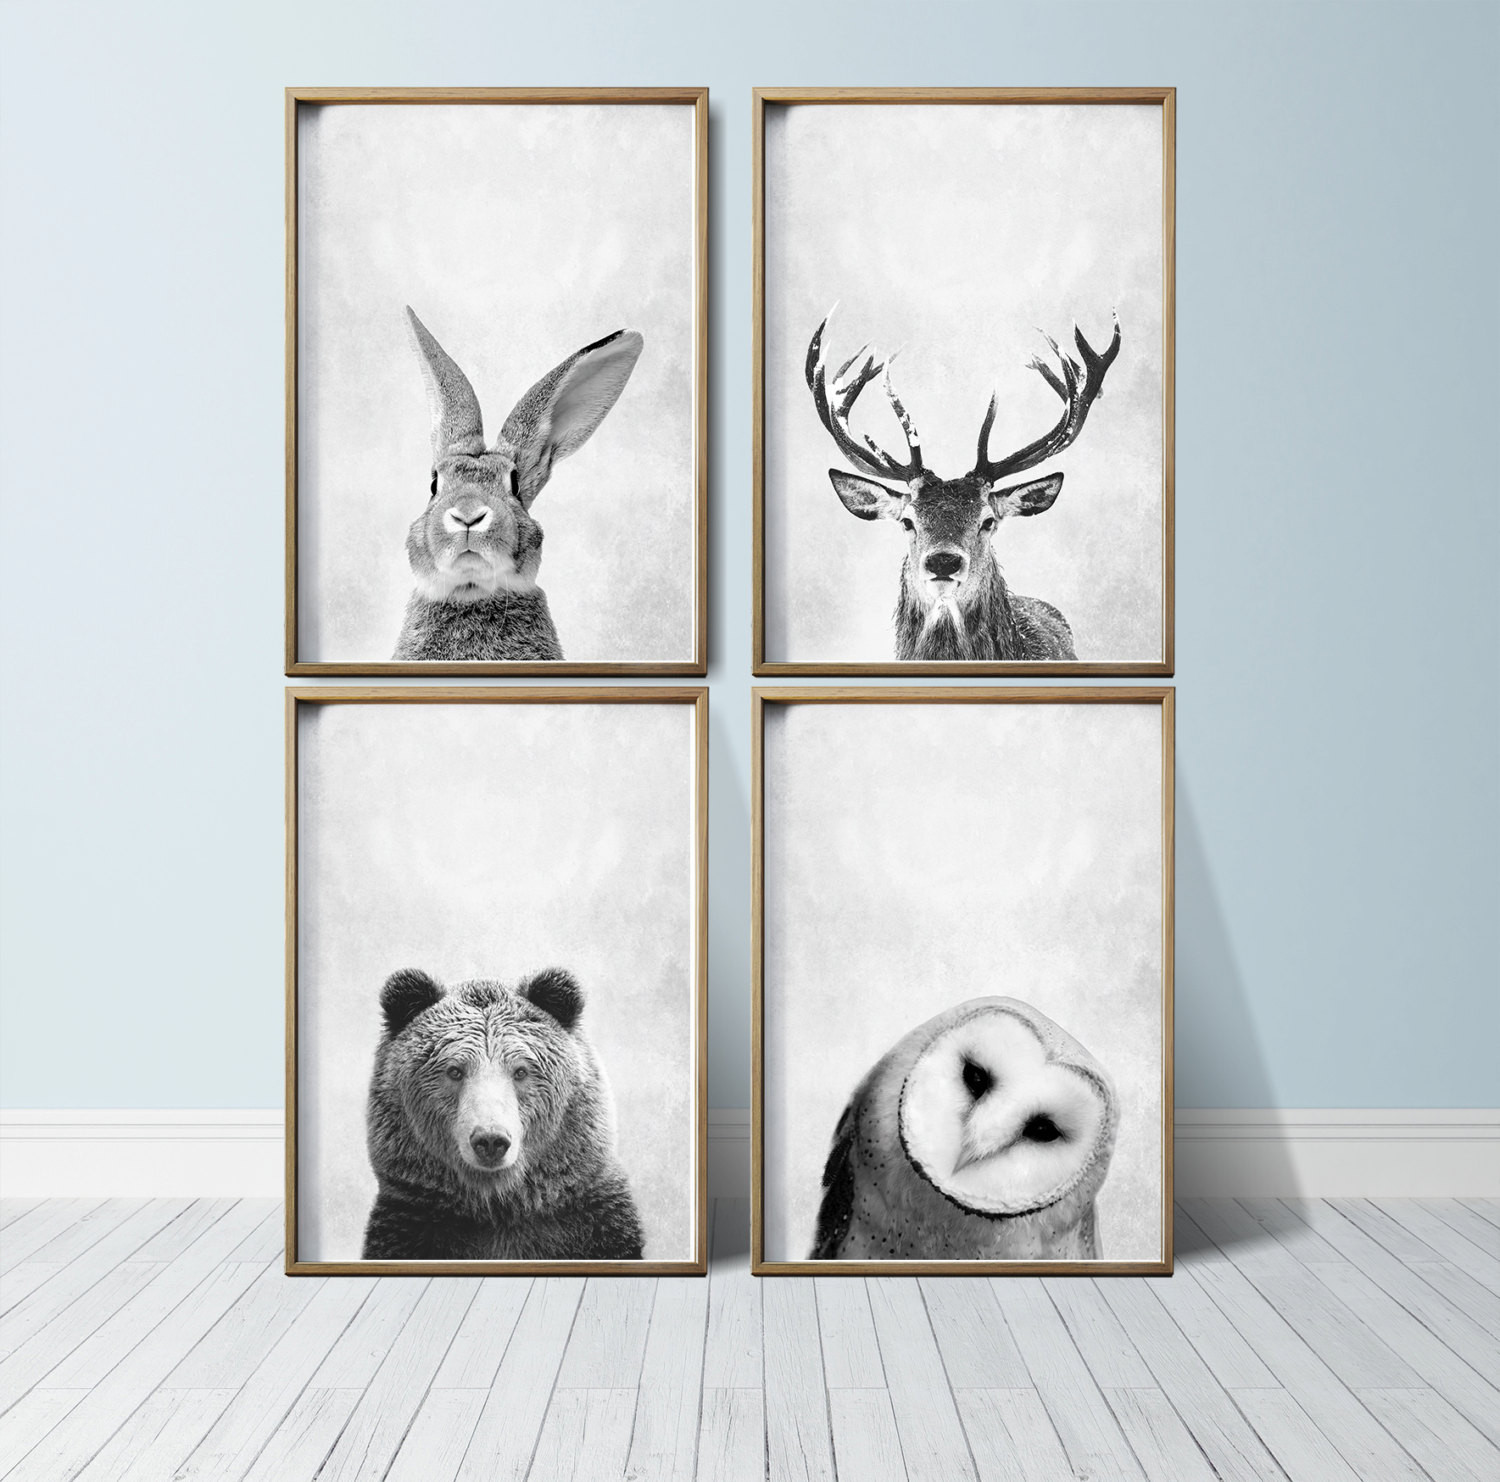 Best ideas about Nursery Wall Art . Save or Pin Nursery Wall Art Animal Print Art Woodland Nursery Decor Now.